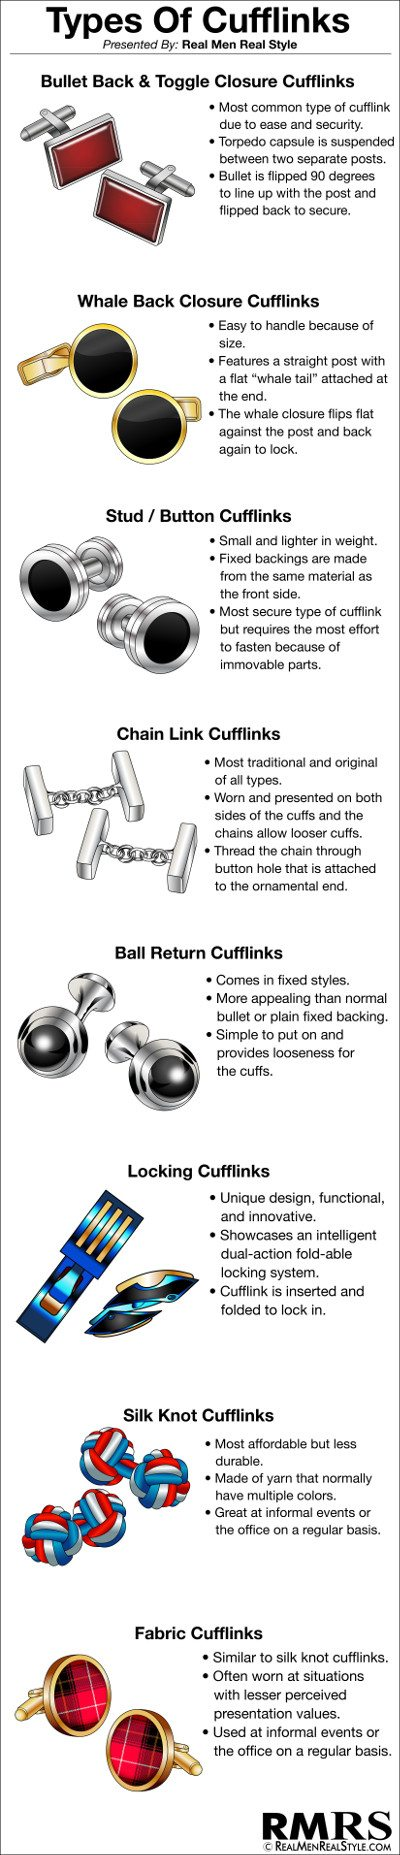 09f241a2a50 A Man's Guide to Cufflinks | Ultimate Cufflink Purchase Guide | How ...